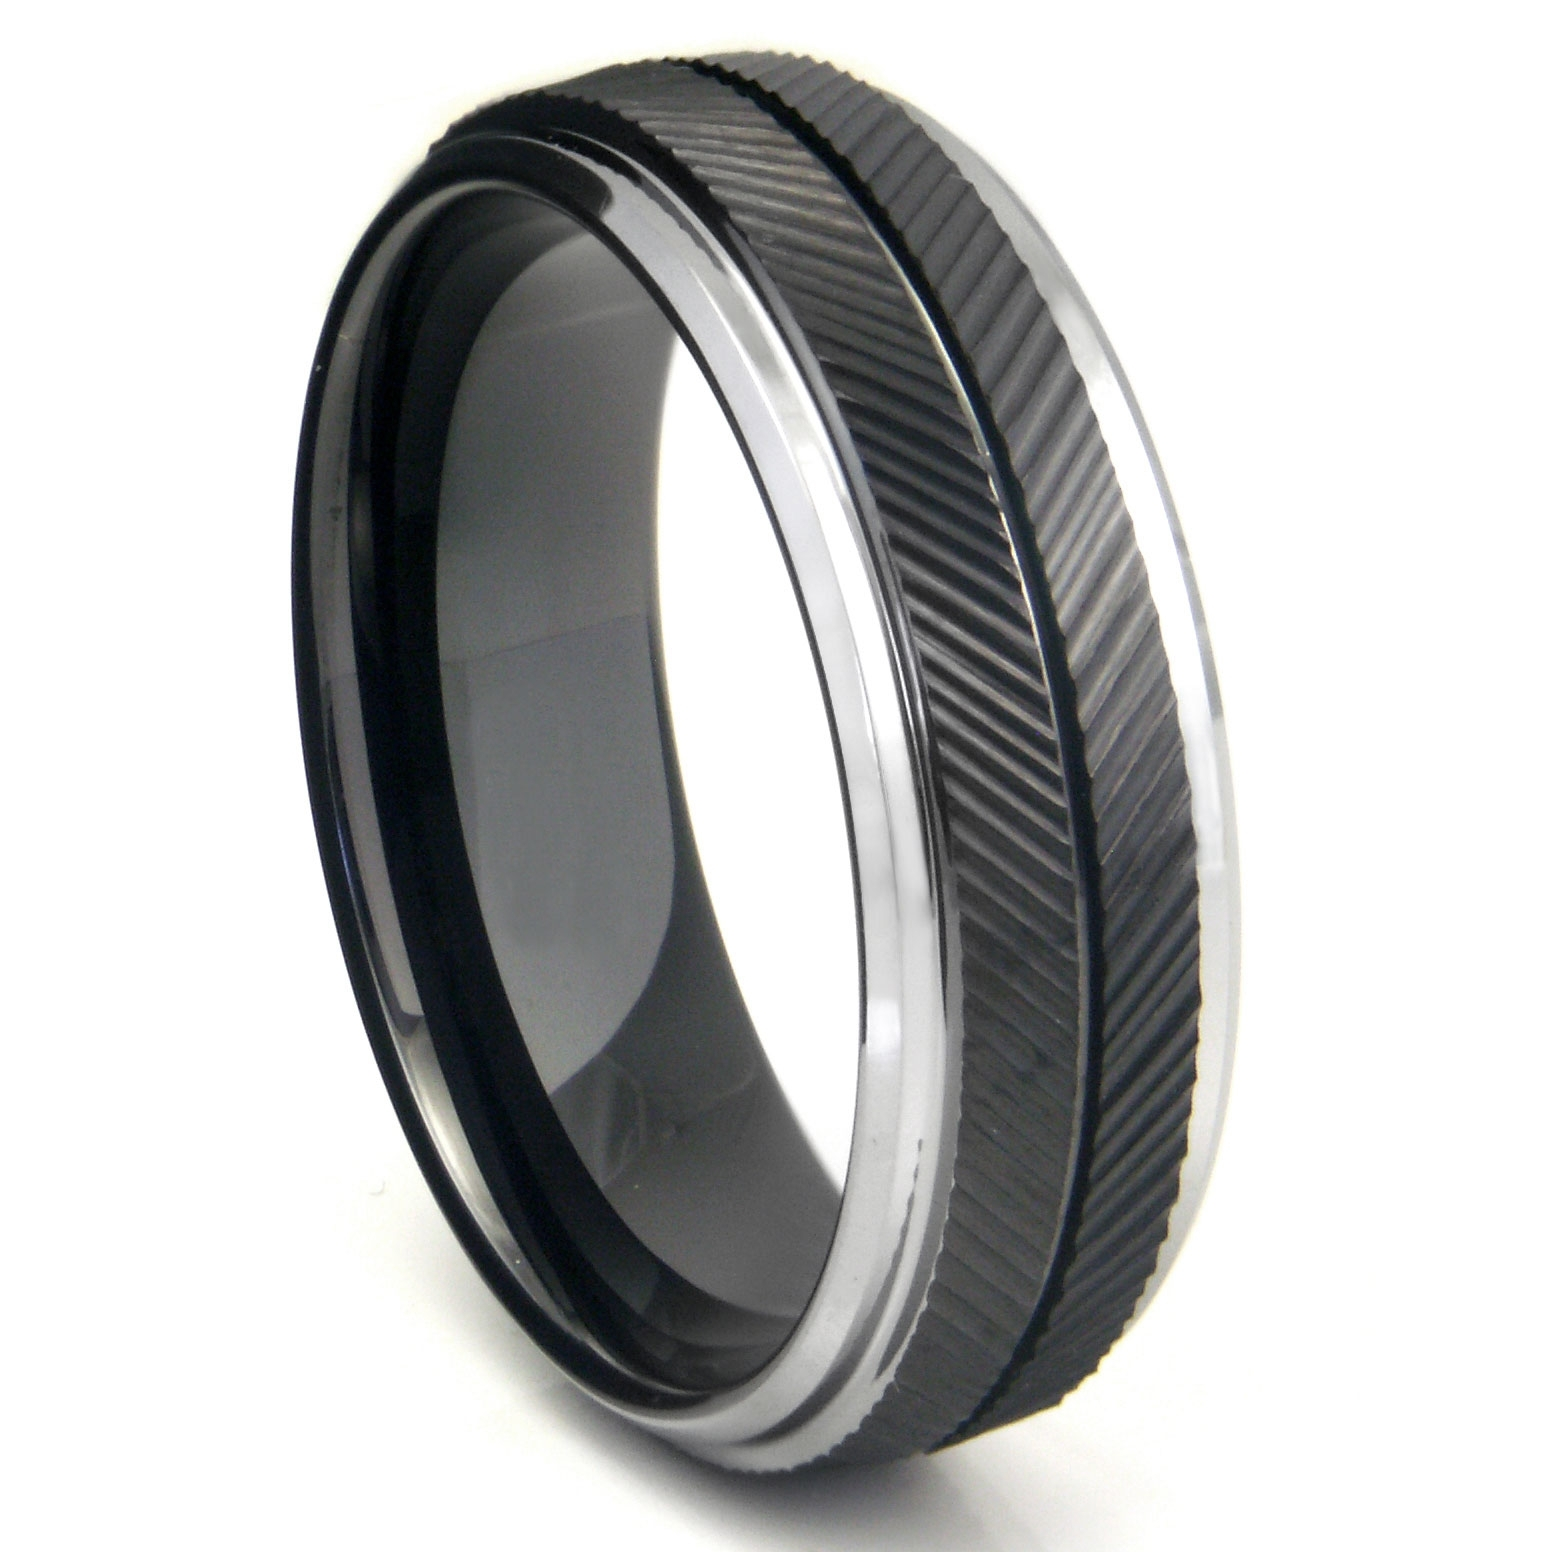 Black Tungsten Carbide Chevron Wedding Band Ring Intended For Most Recently Released Men's Chevron Rings (View 4 of 15)